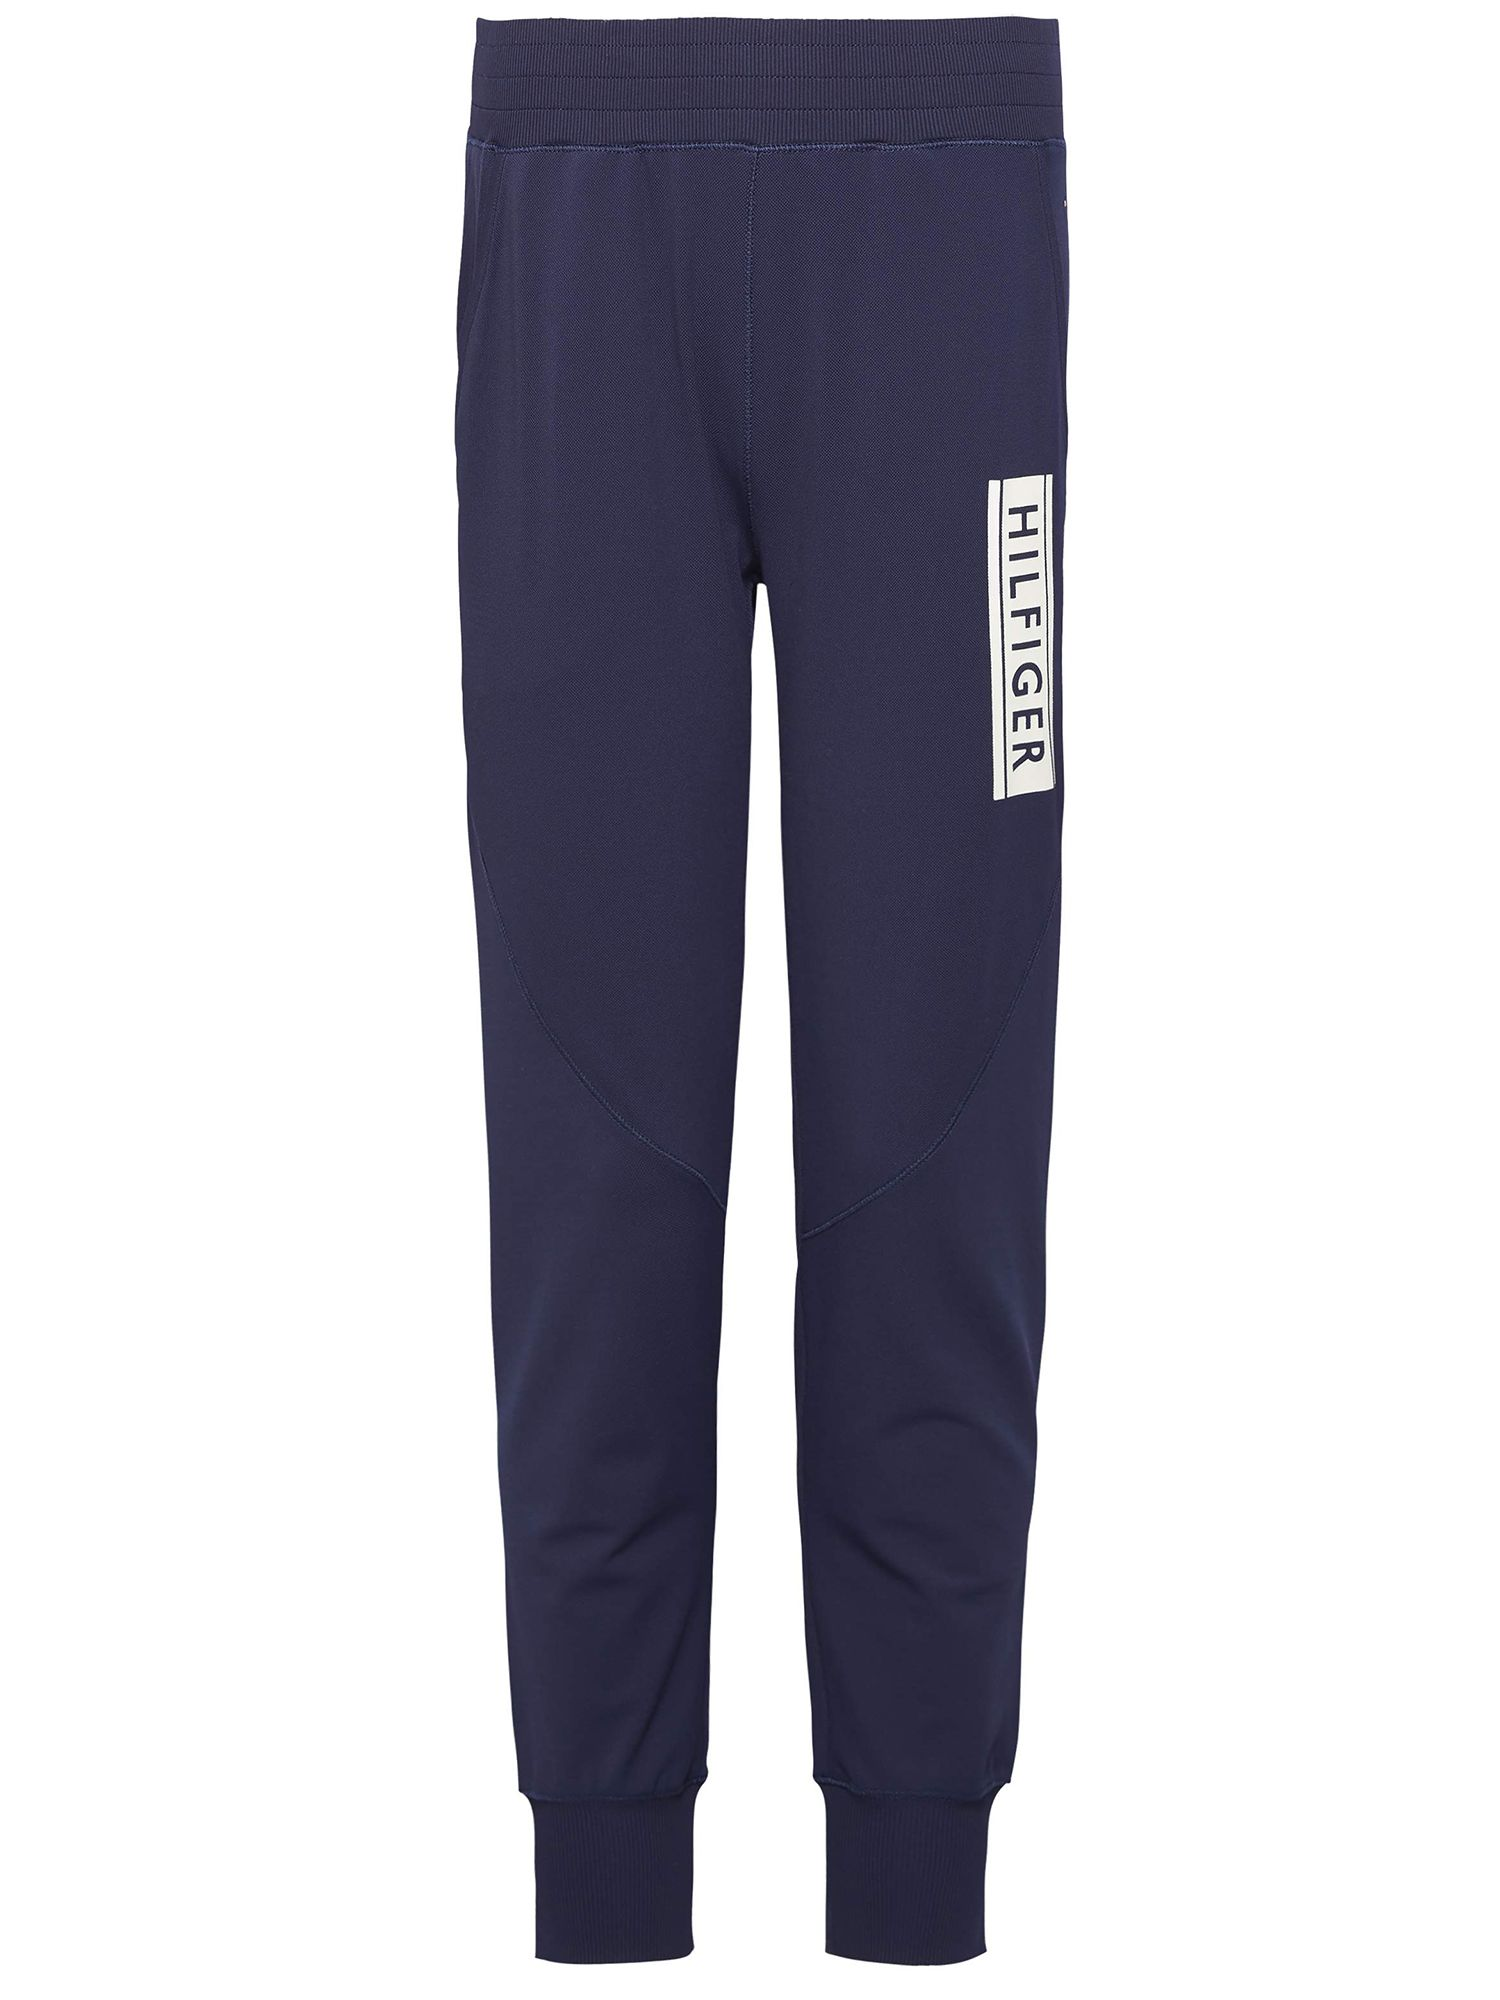 Tommy Hilfiger Tara Sweatpants, Blue